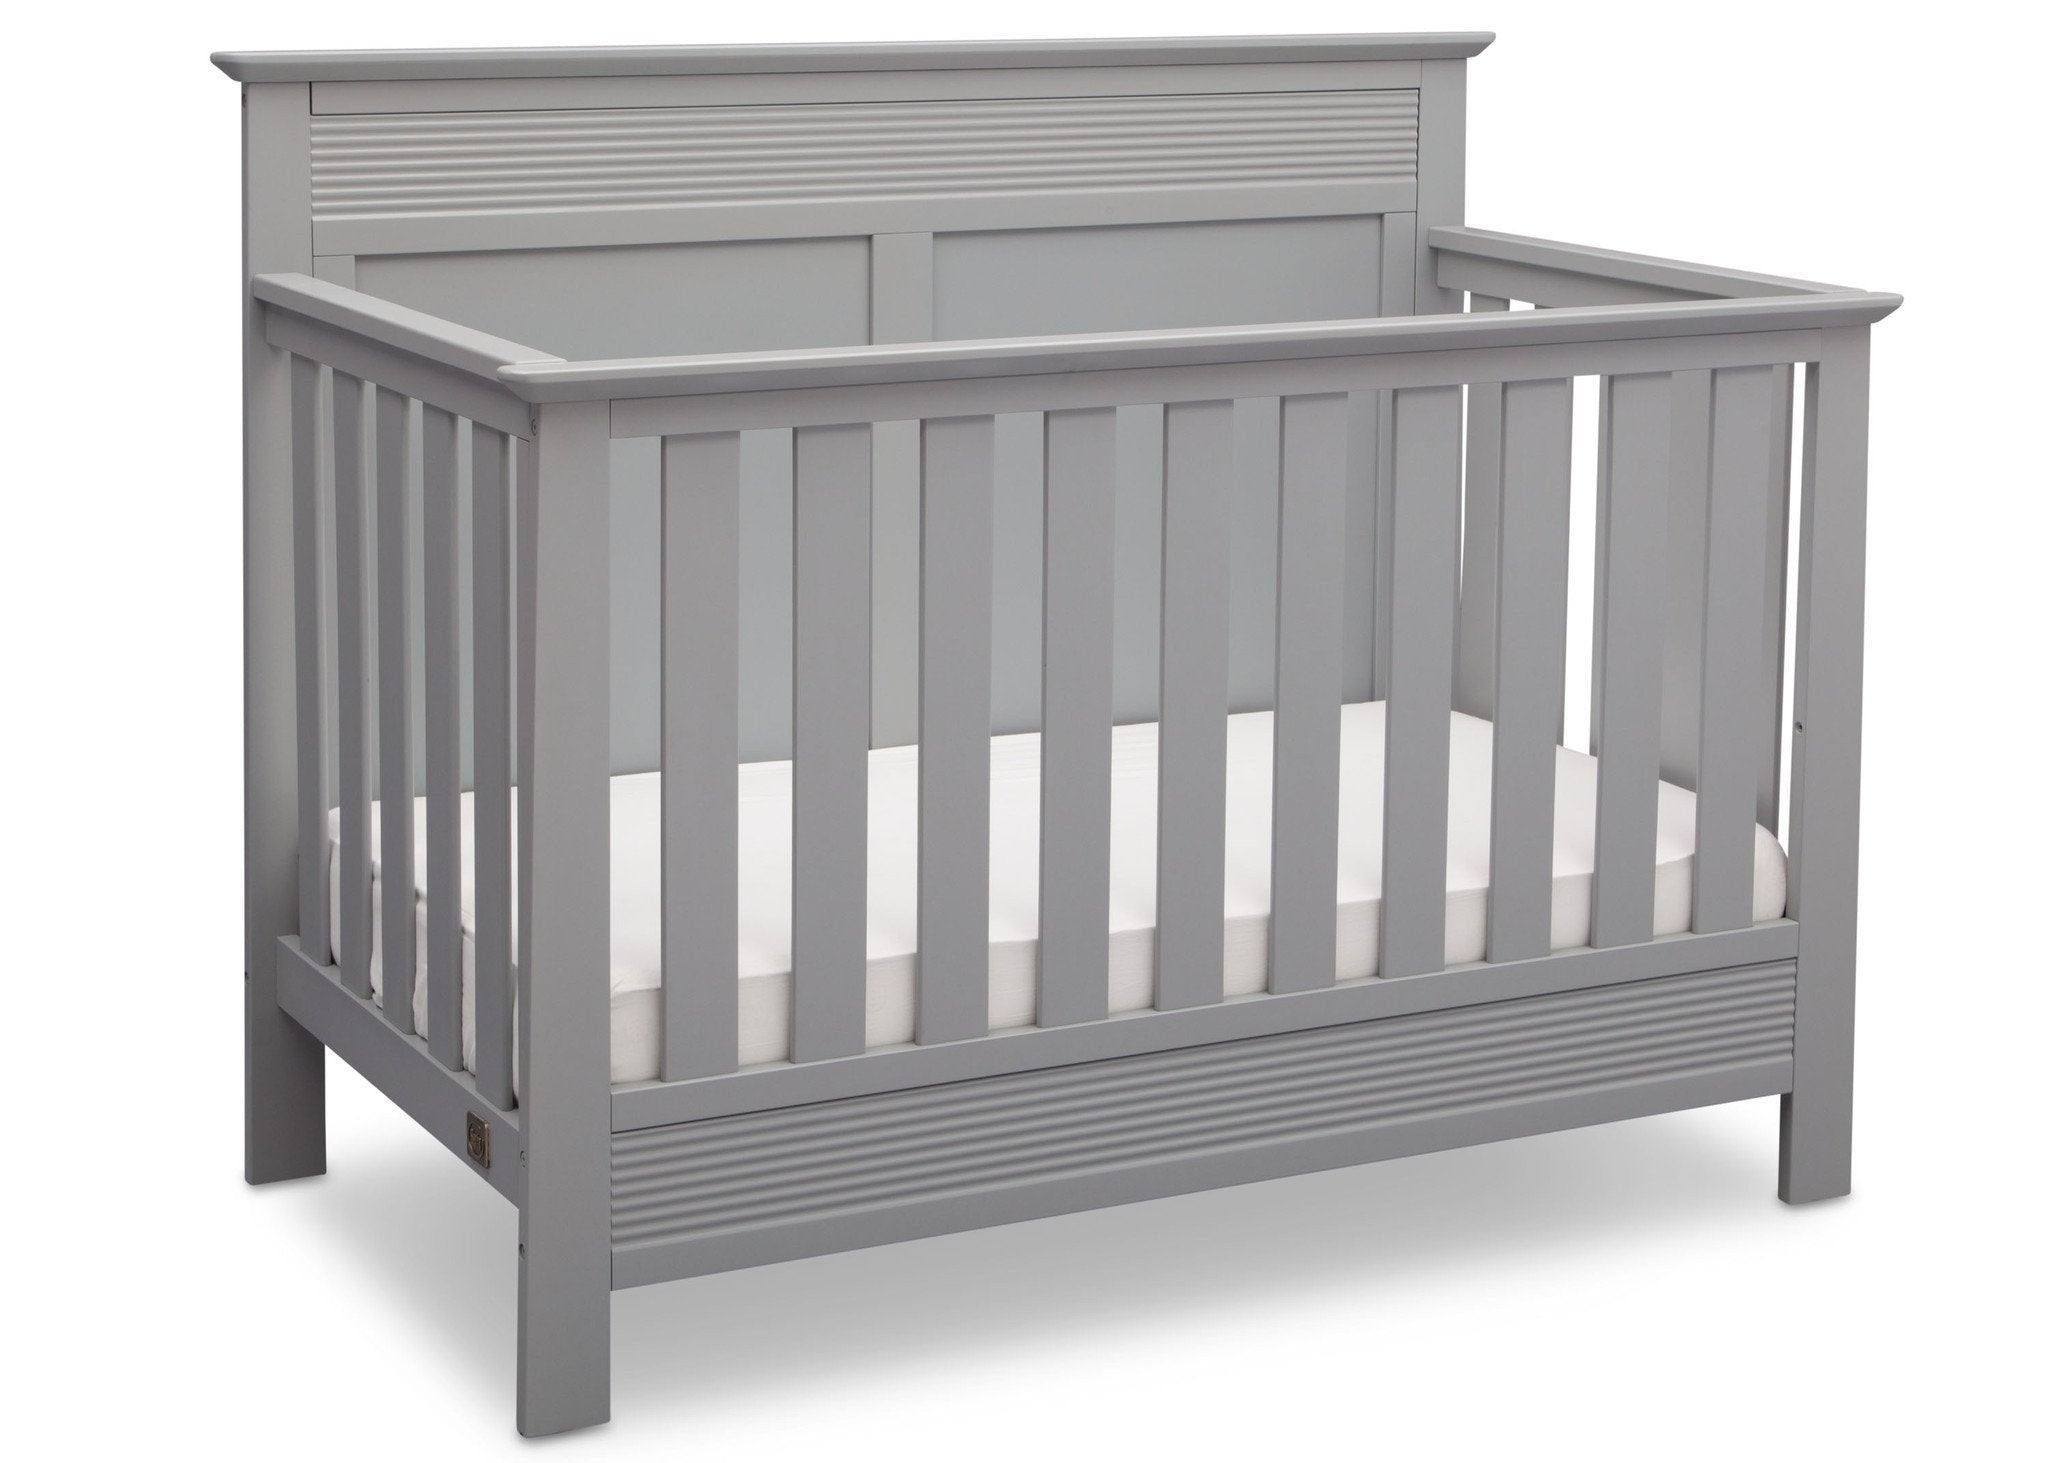 Serta Grey (026) Fall River 4-in-1 Convertible Crib, Right Crib View a2a